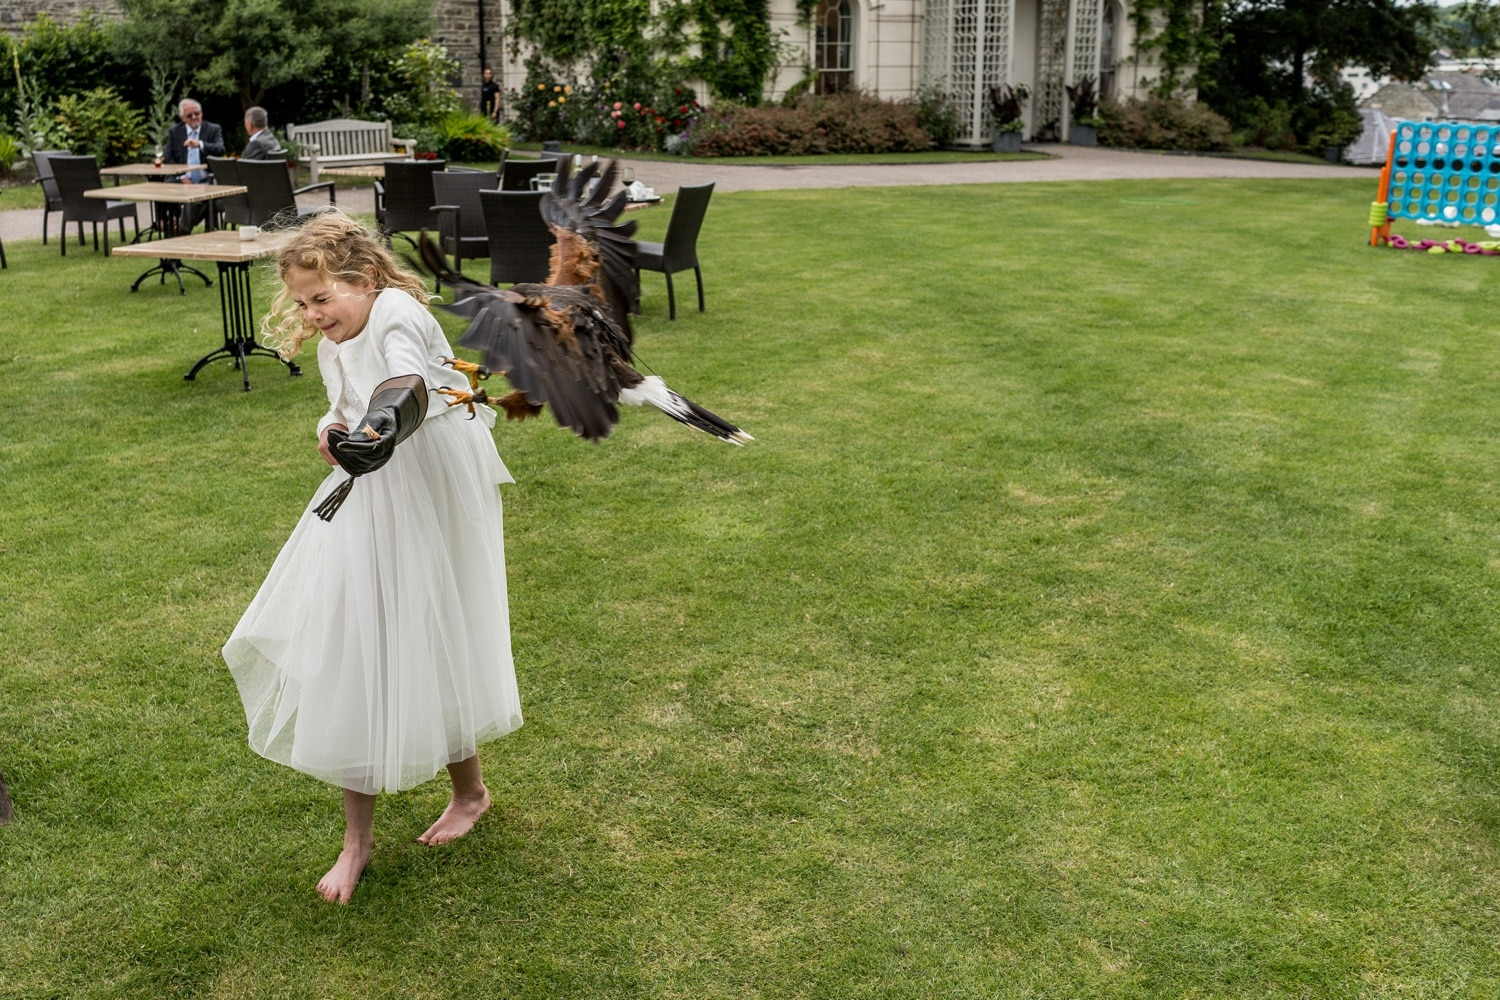 Falconry display at a wedding